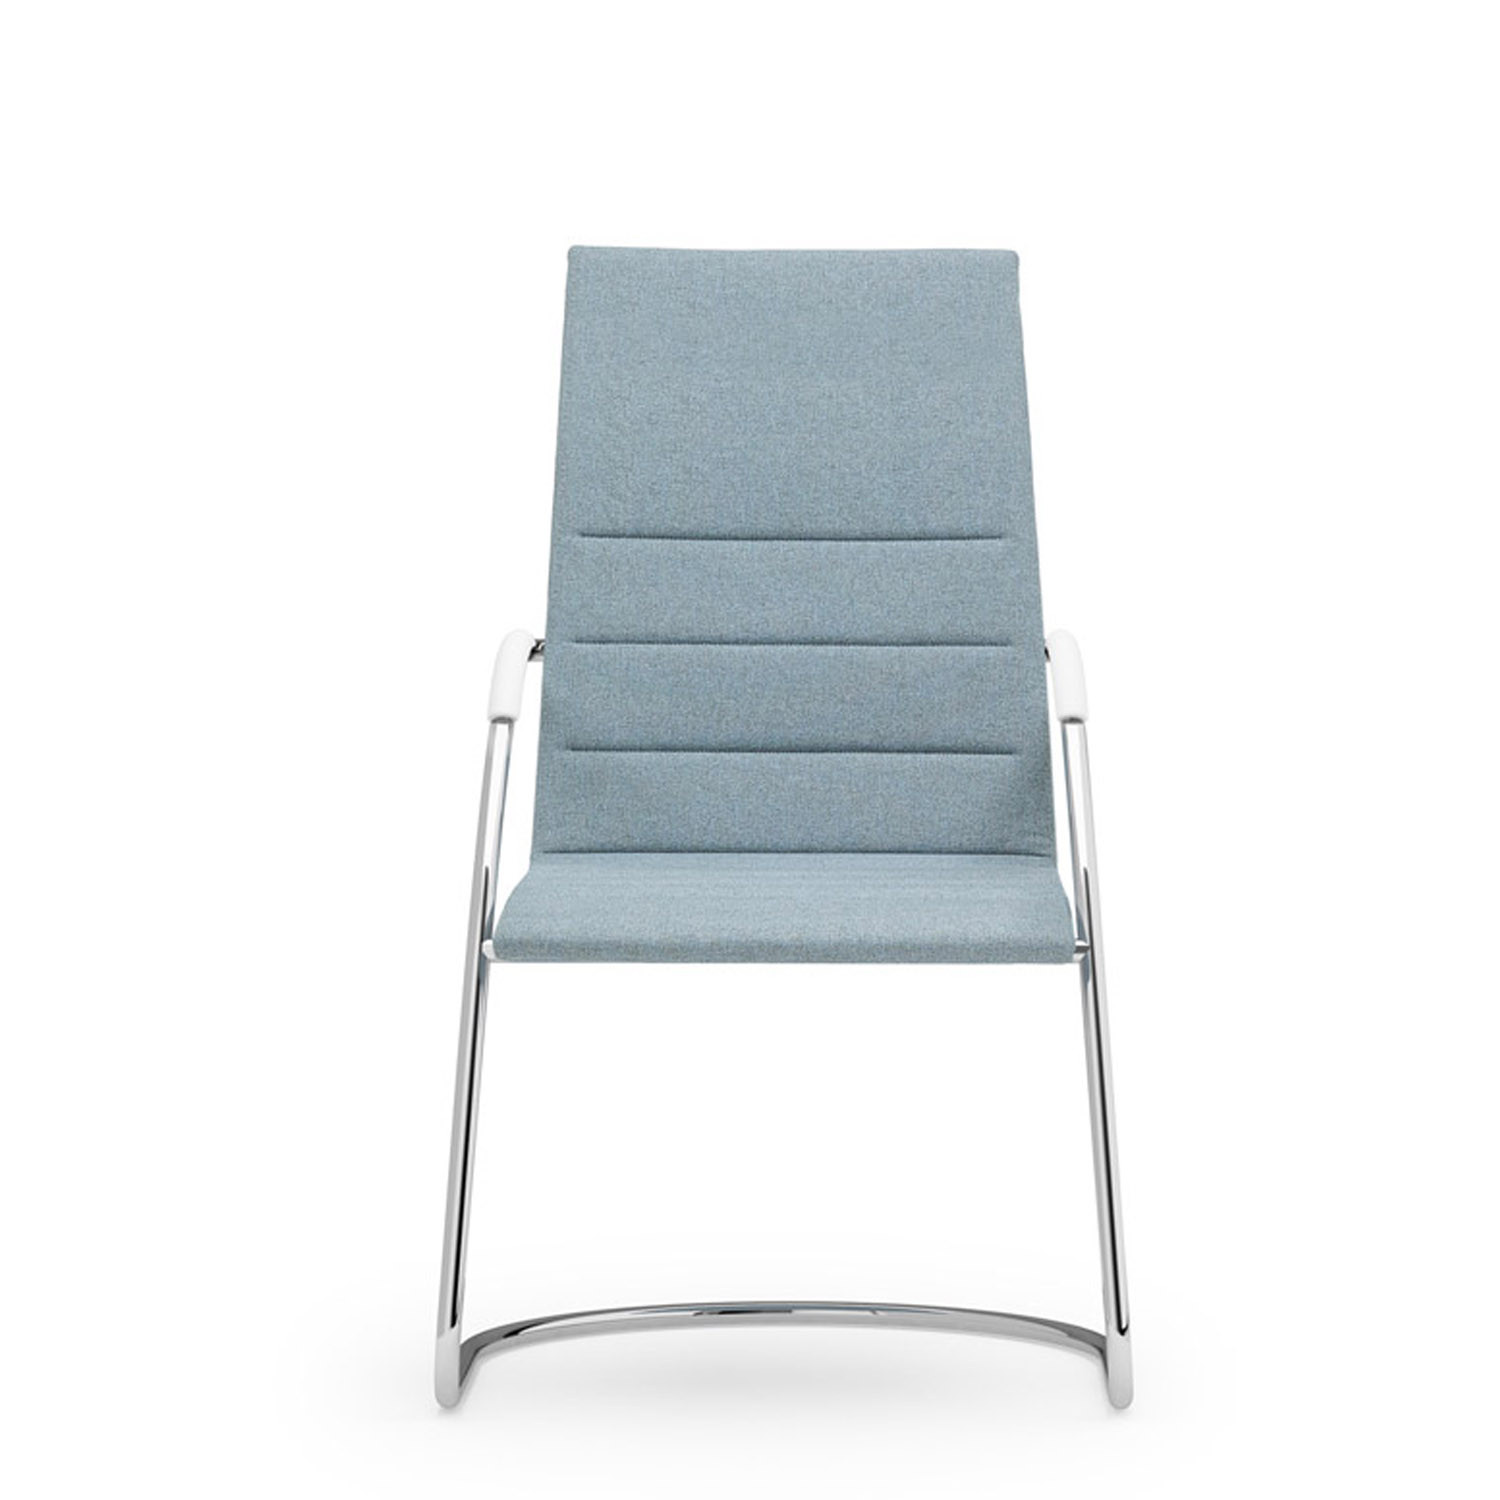 ICF Spa Valea Cantilever Chair